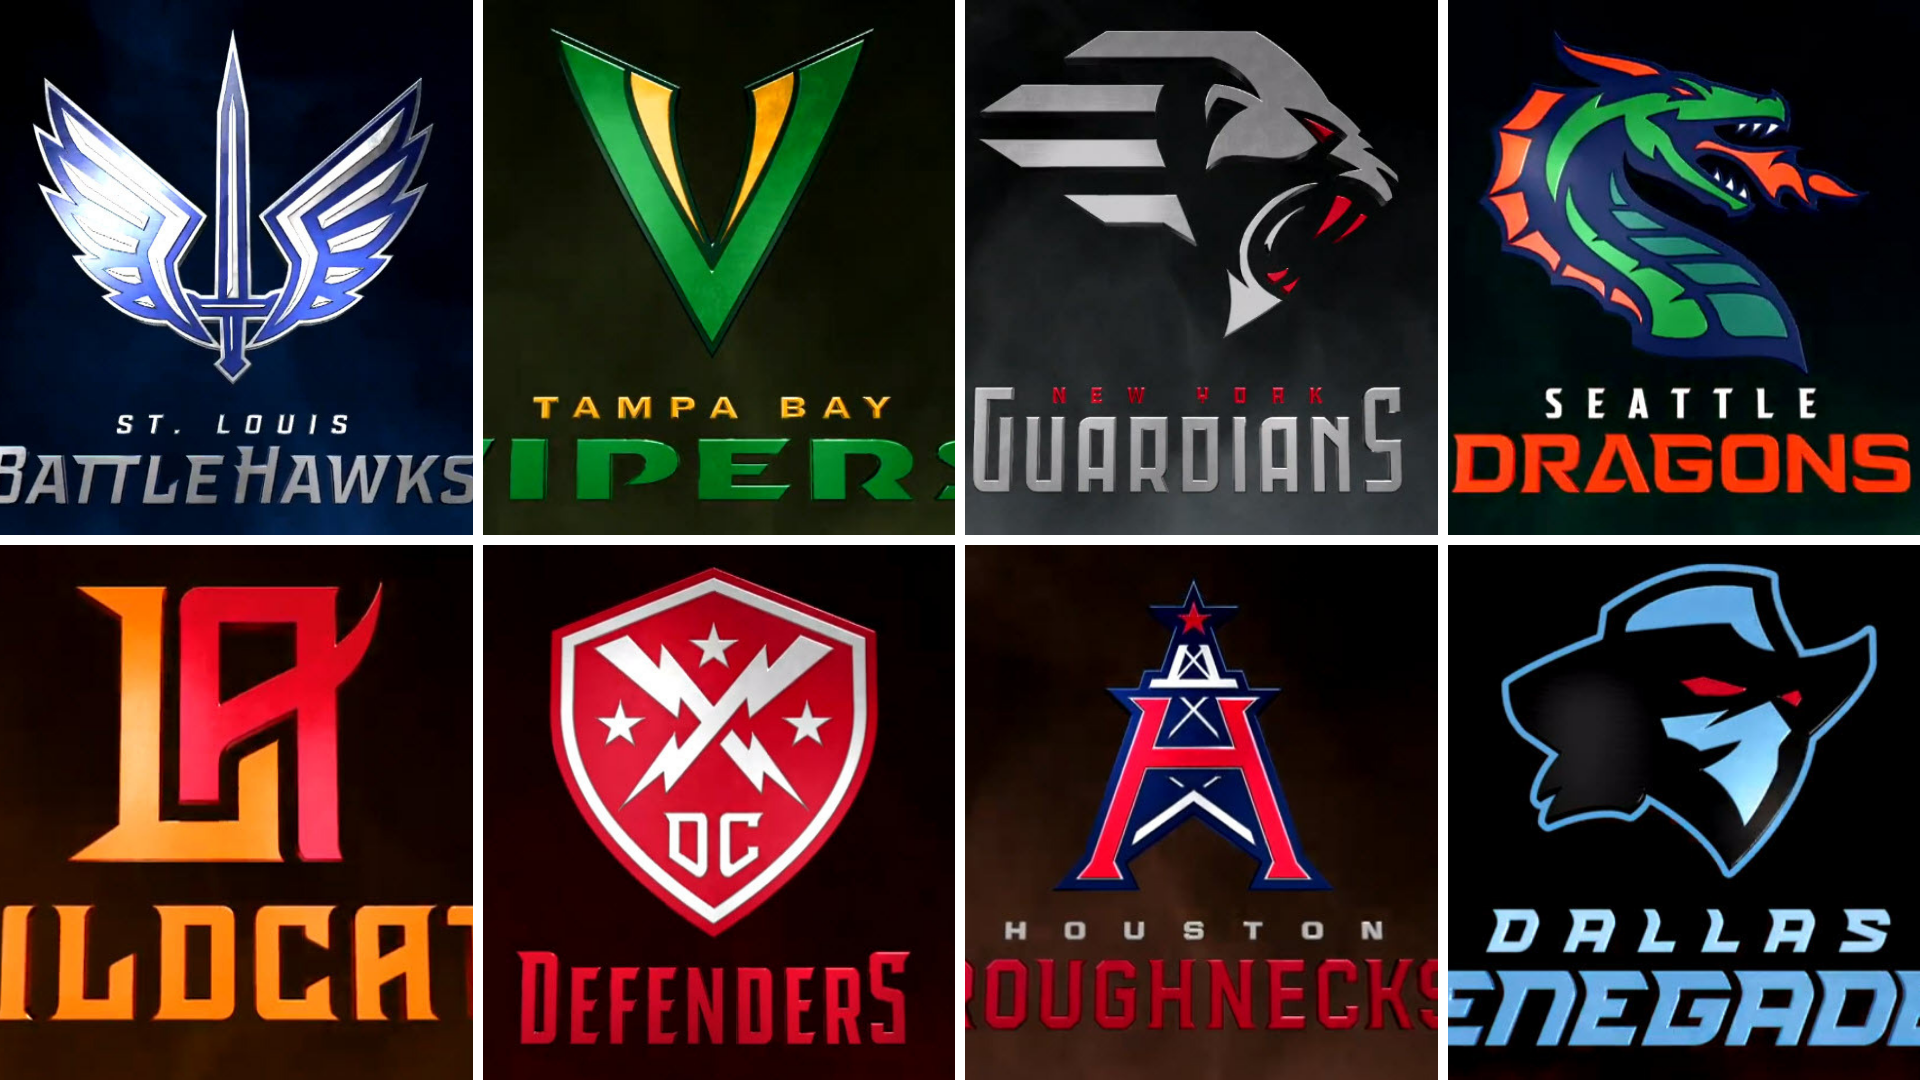 XFL unveils team names, logos for all 8 franchises